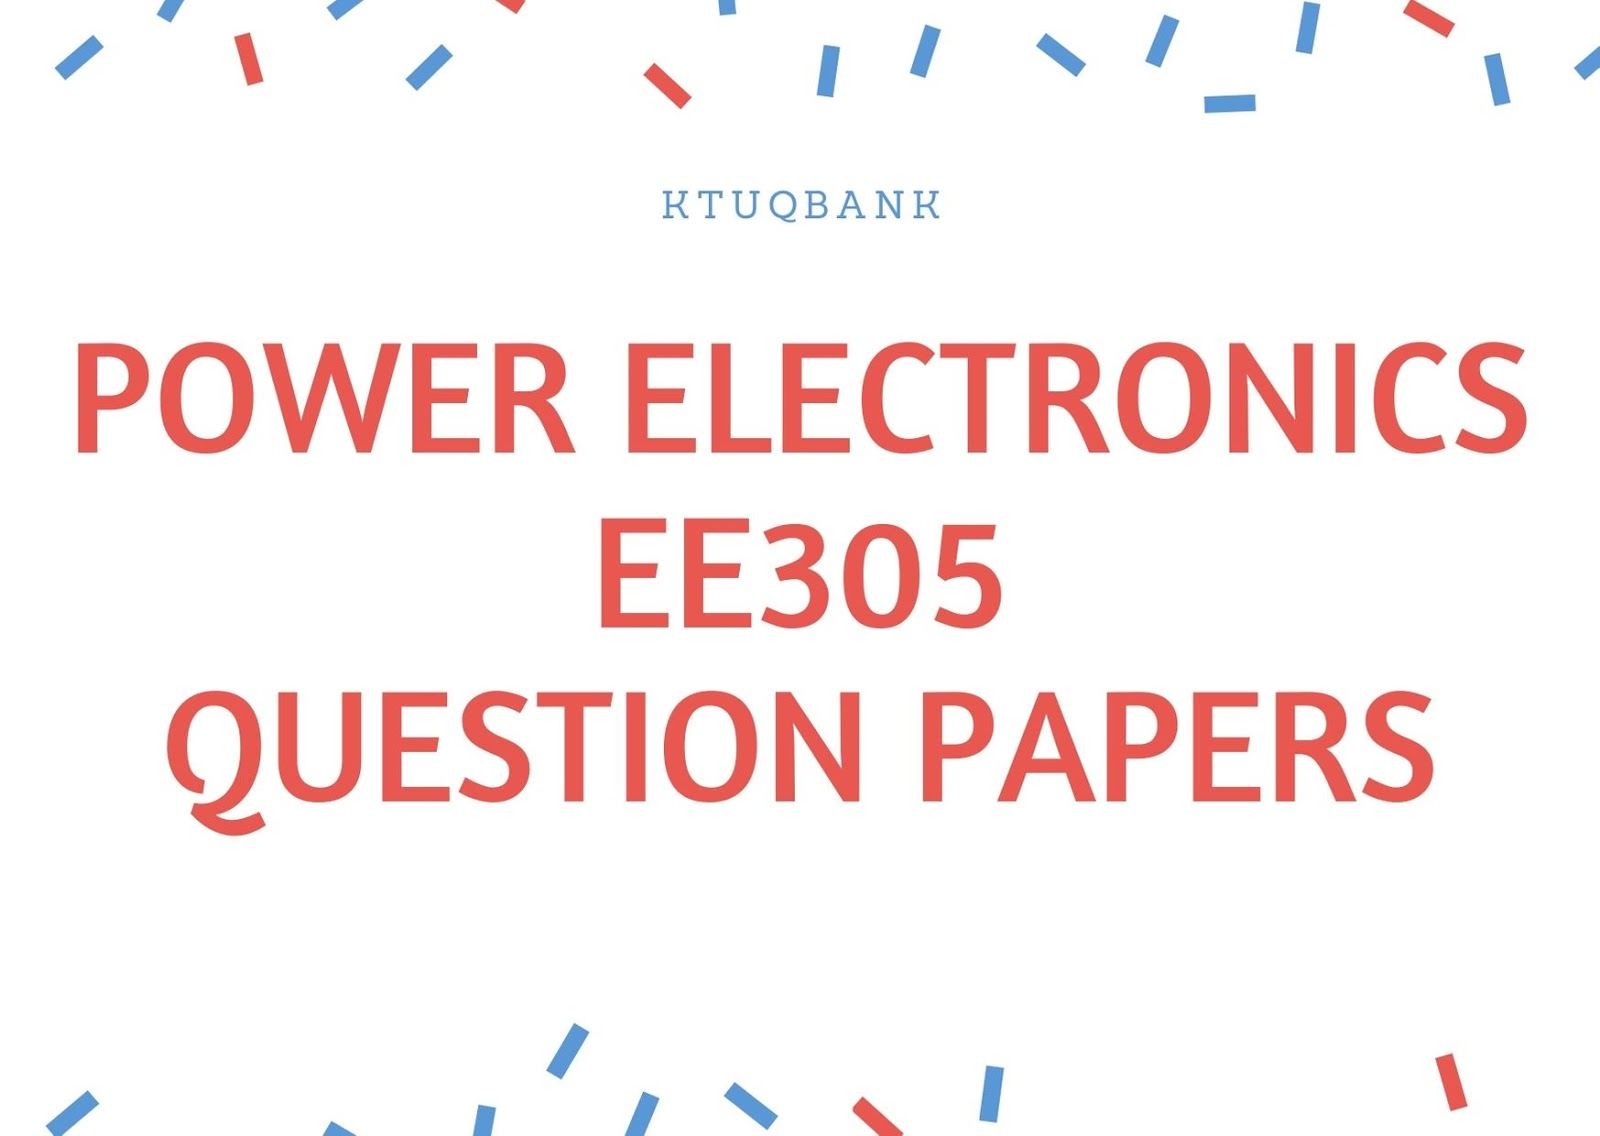 Power Electronics | EE305 | Question Papers (2015 batch)